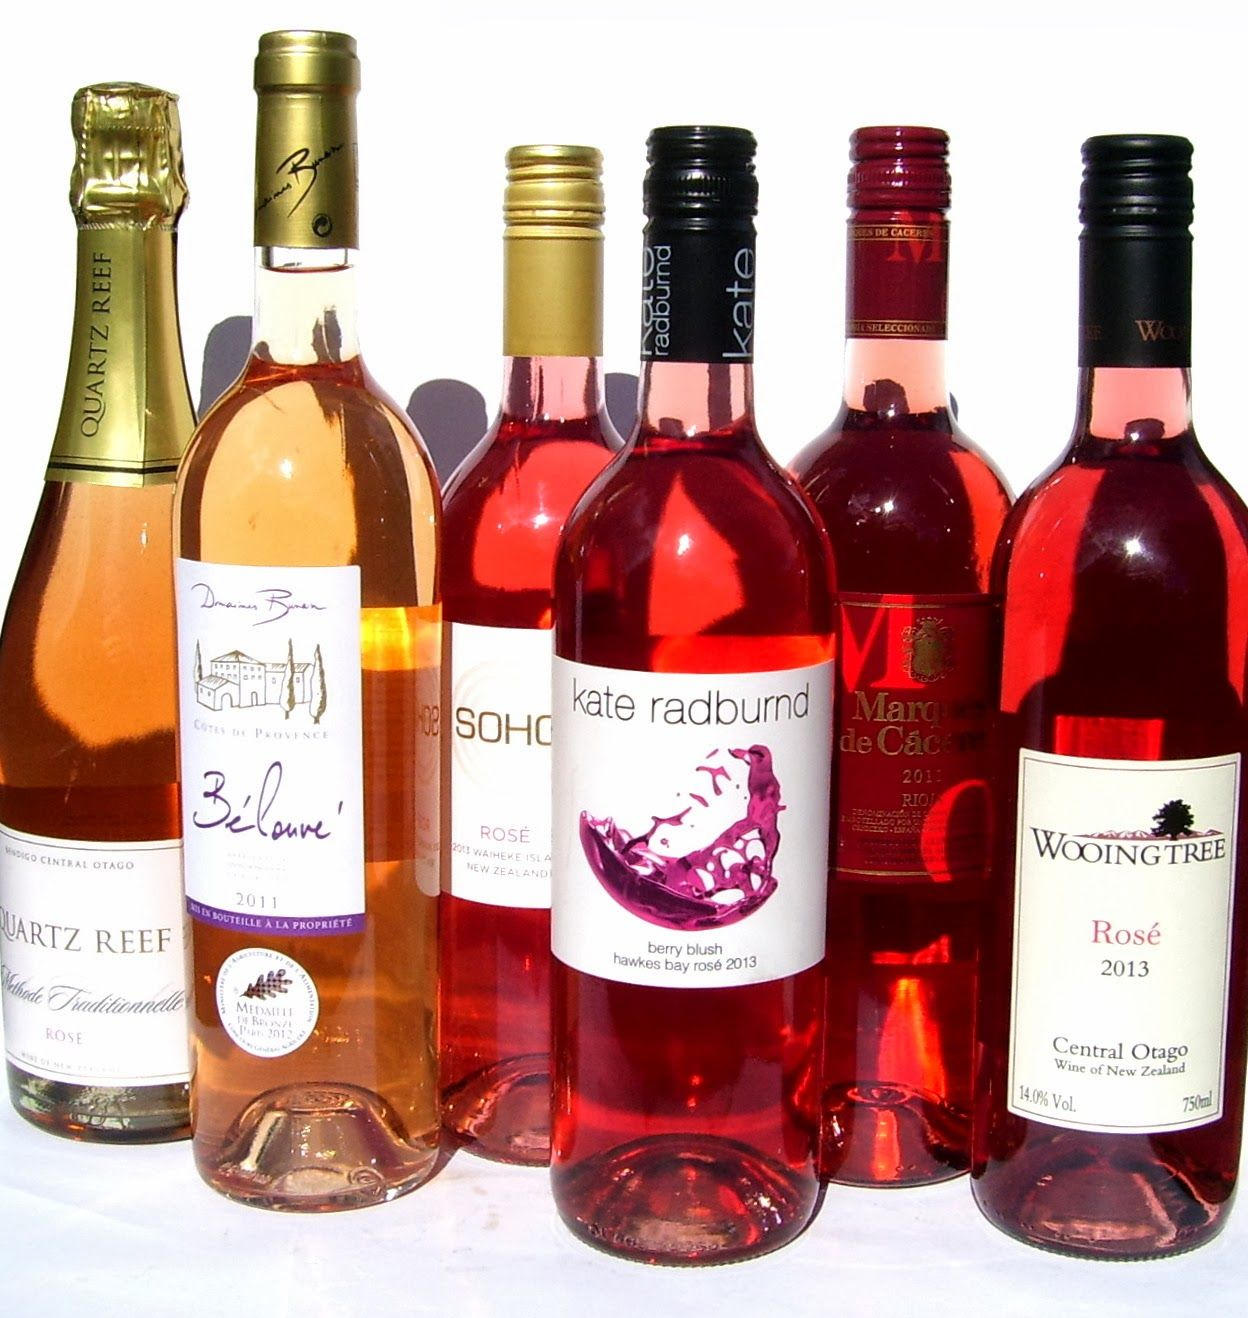 Nz Wine Blogger New Zealand Rose Wines For Summer Wines Nz Wine Rose Wine